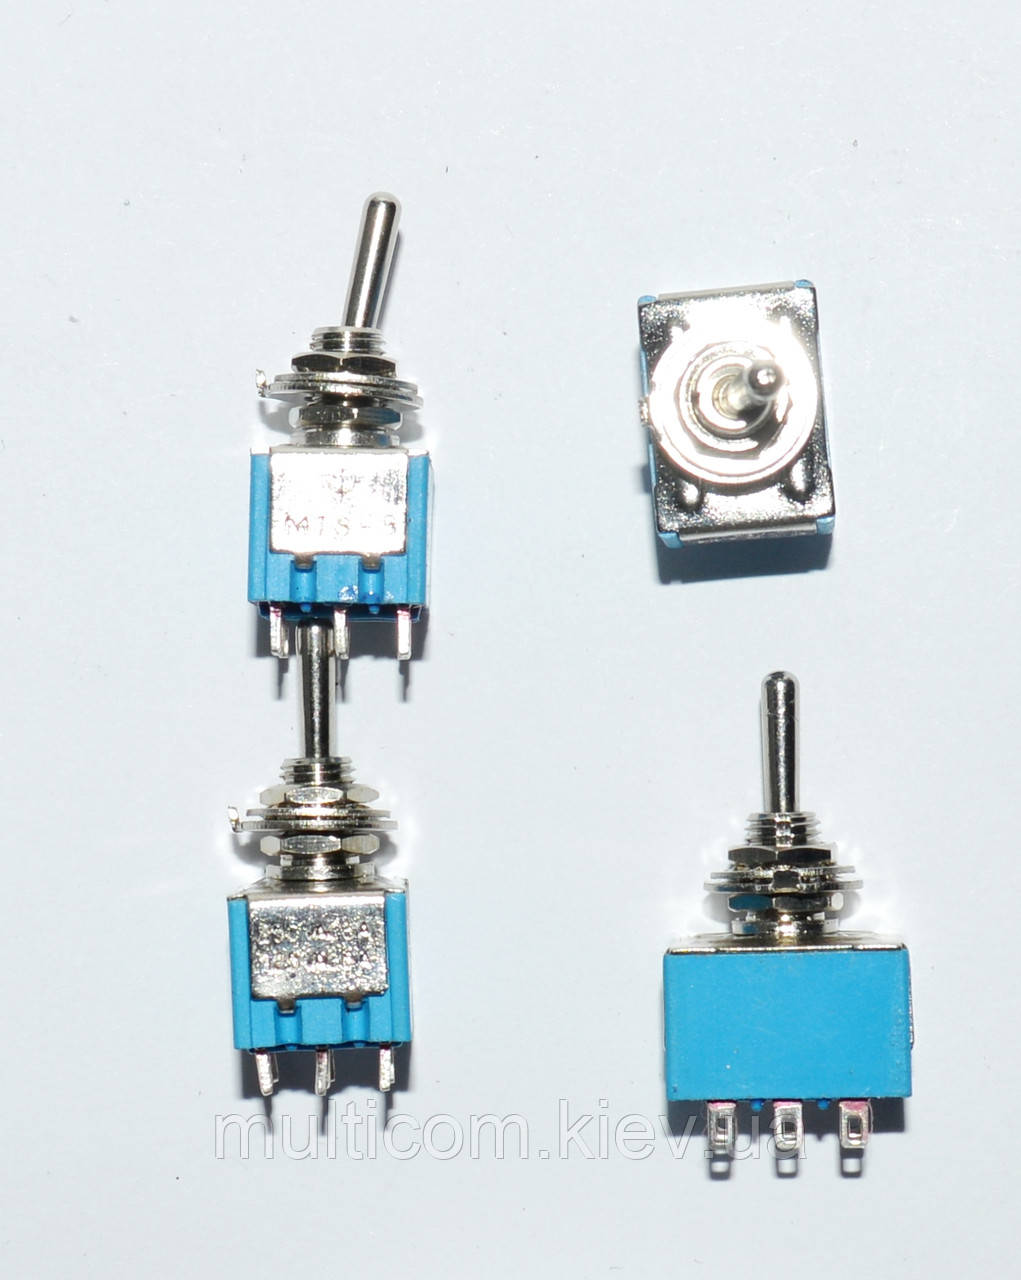 11-00-021. Тумблер MTS-303 (ON-OFF-ON), 9pin, 3A 250VAC